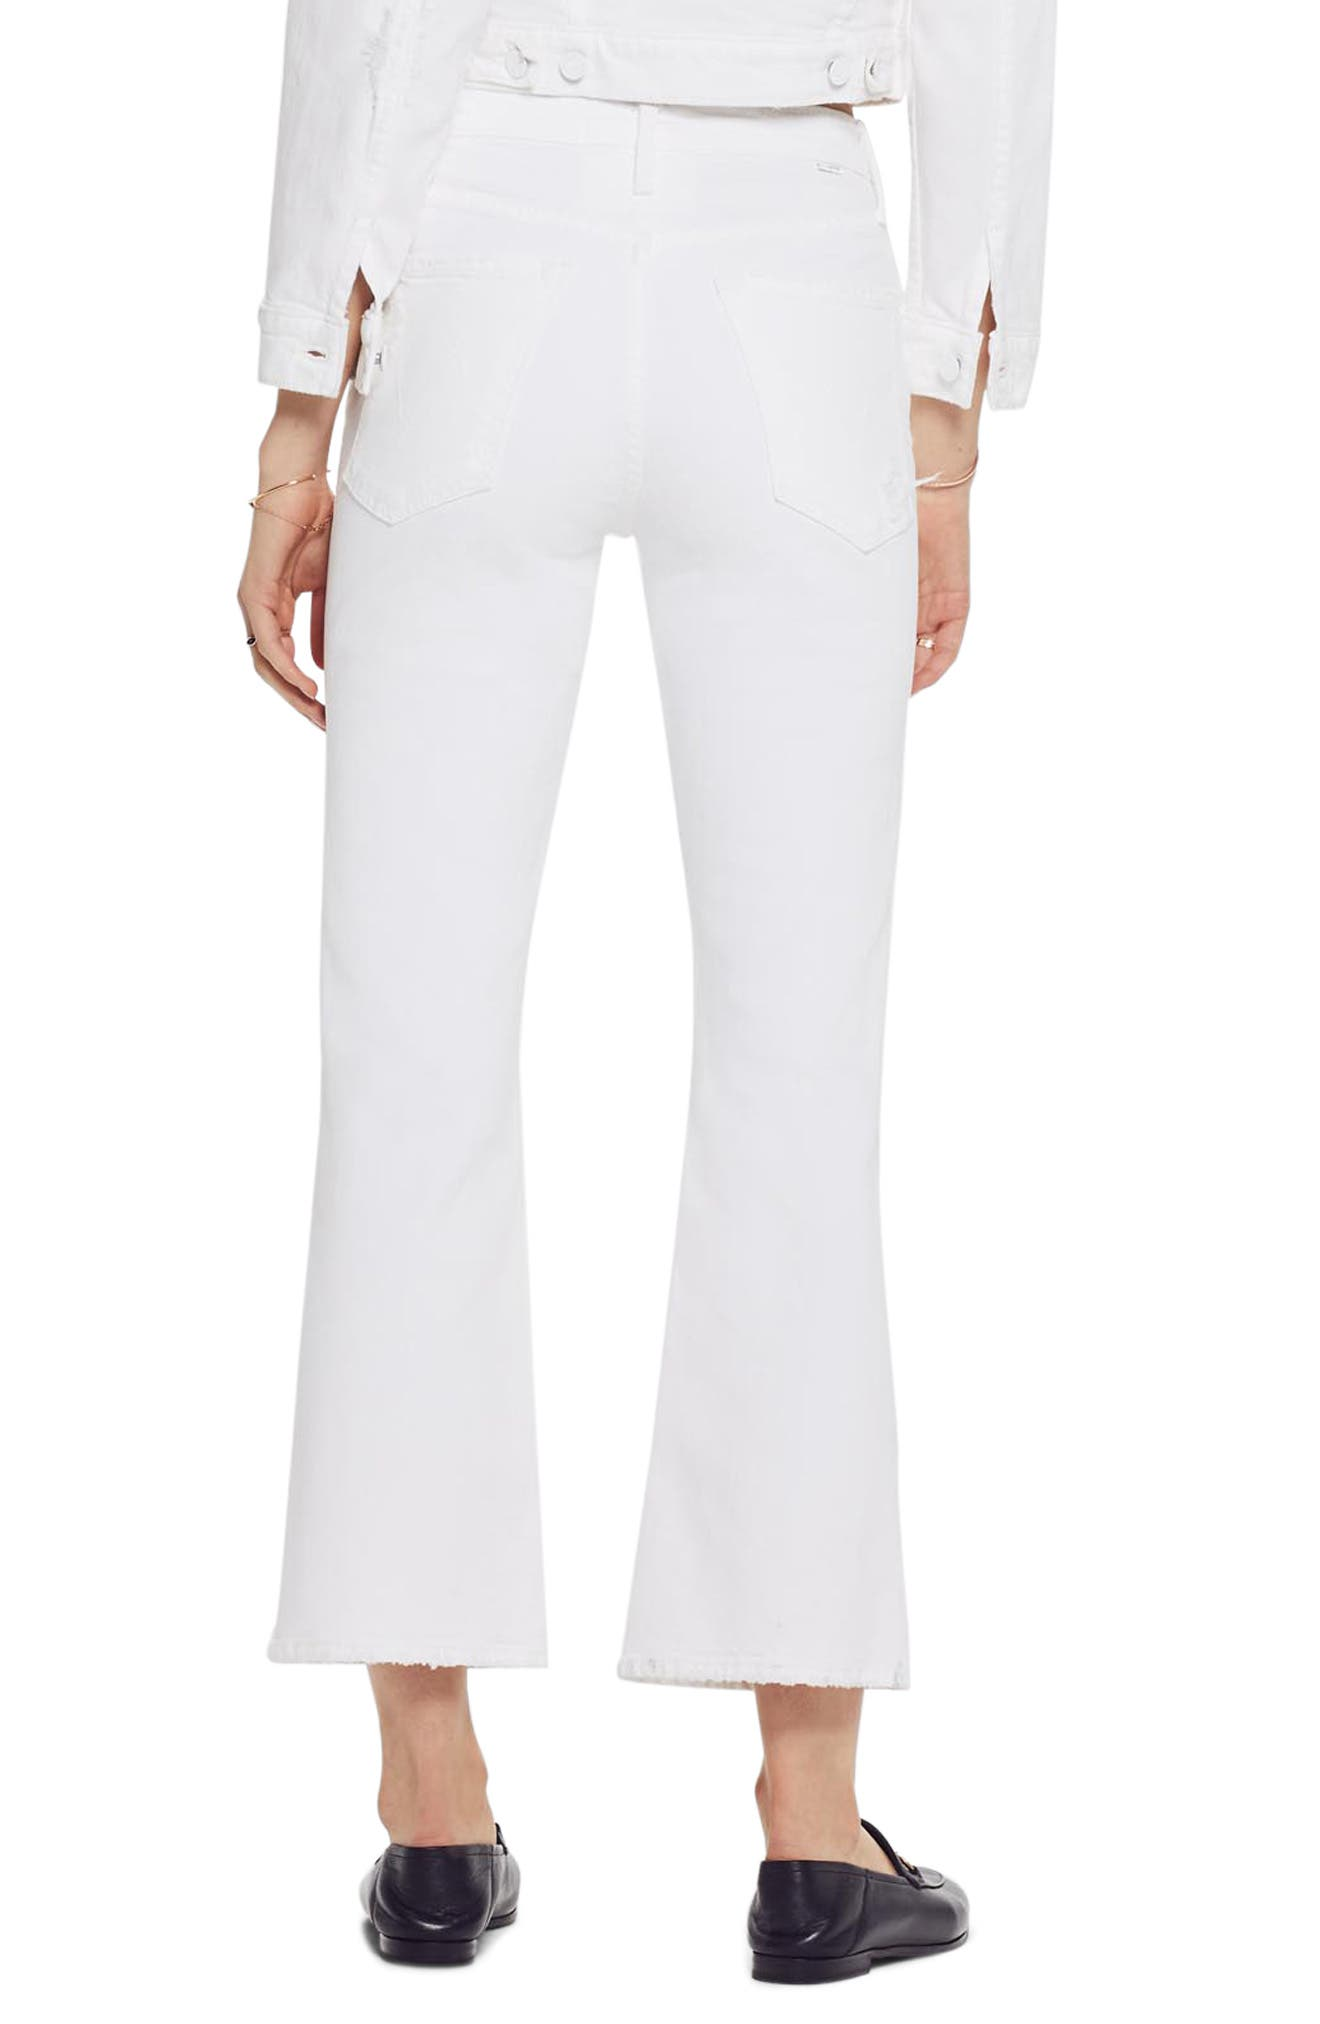 MOTHER, The Tripper High Waist Crop Bootcut Jeans, Alternate thumbnail 2, color, ALMOST INNOCENT